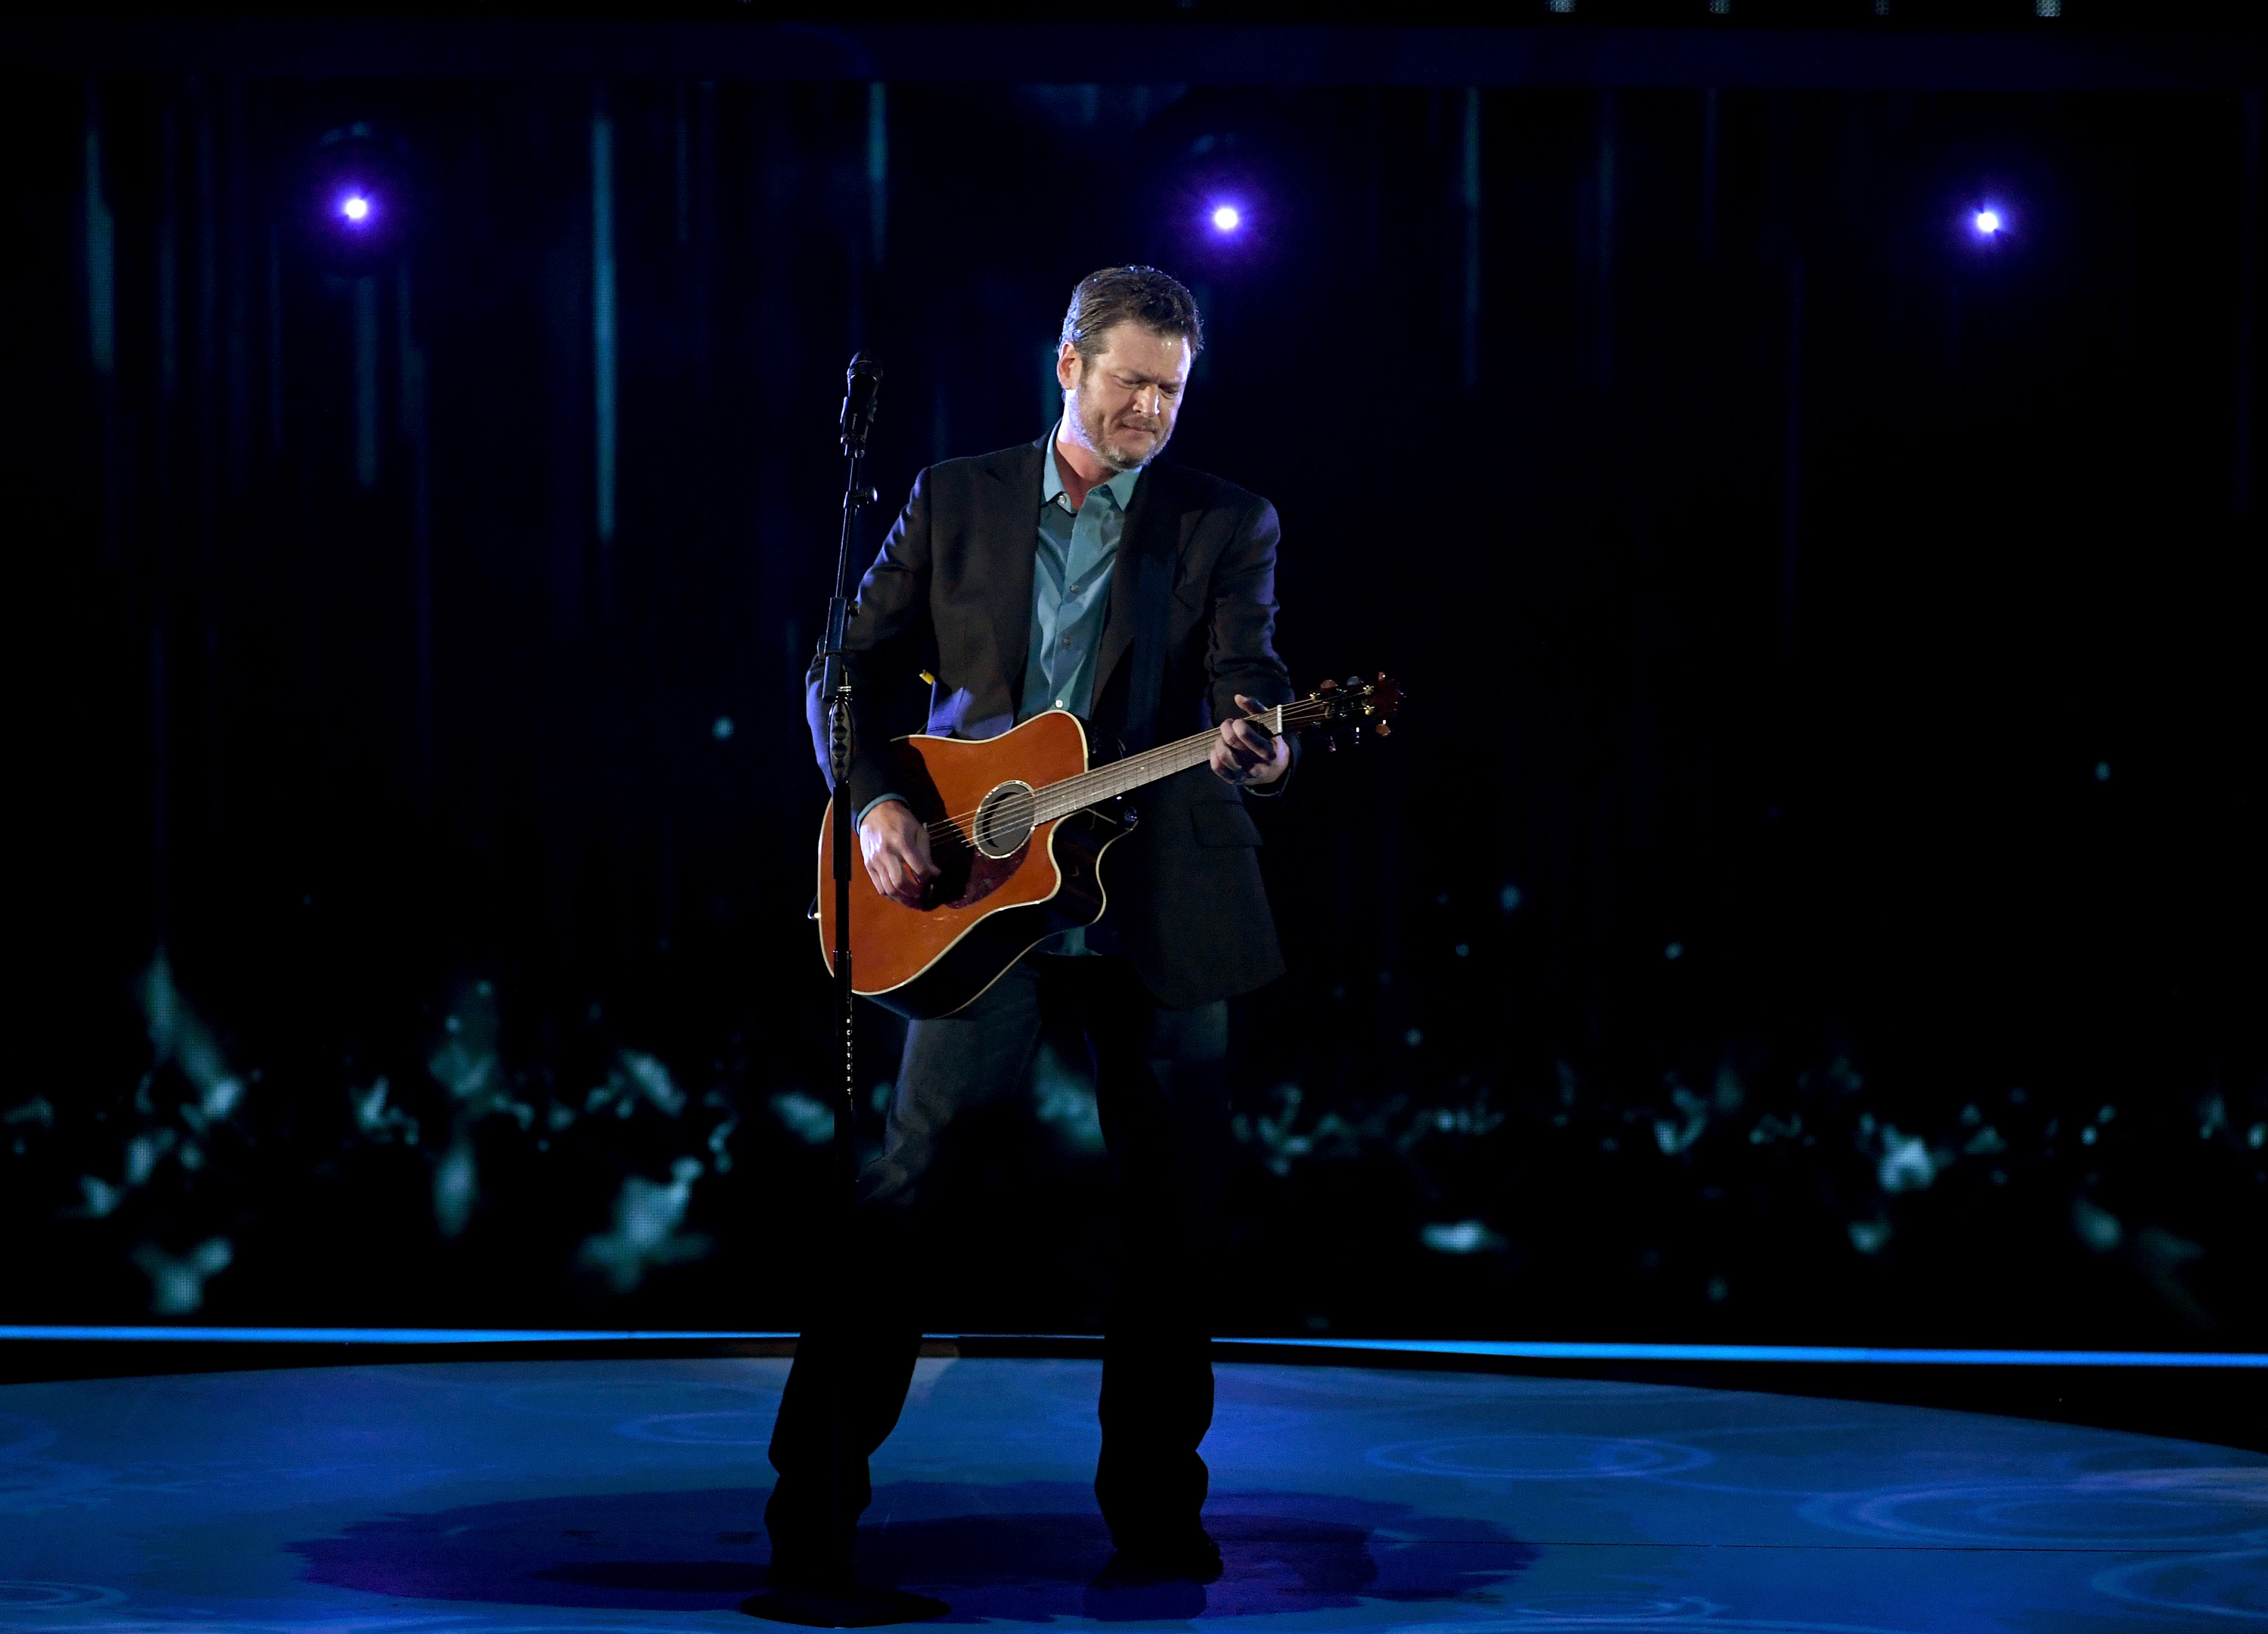 Blake Shelton 39 S Country Music Freaks 39 Tour Coming To St